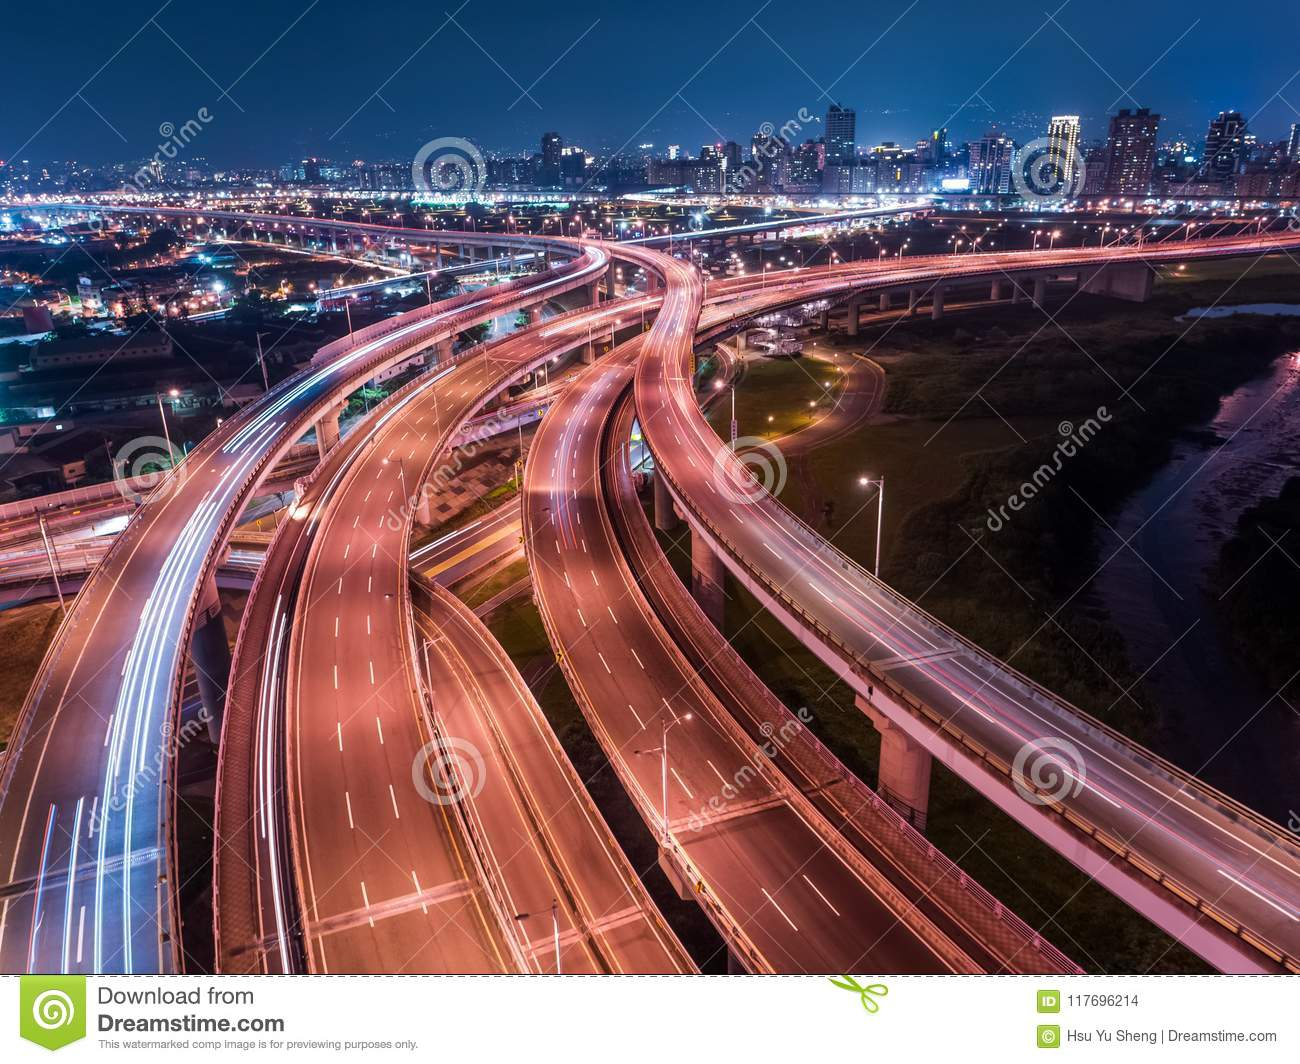 Car Light Trails Of Chongcui Bridge Long Exposure Of Aerial Photography Use The Drone At Night In New Taipei Taiwan Stock Photo Image Of Angle City 117696214